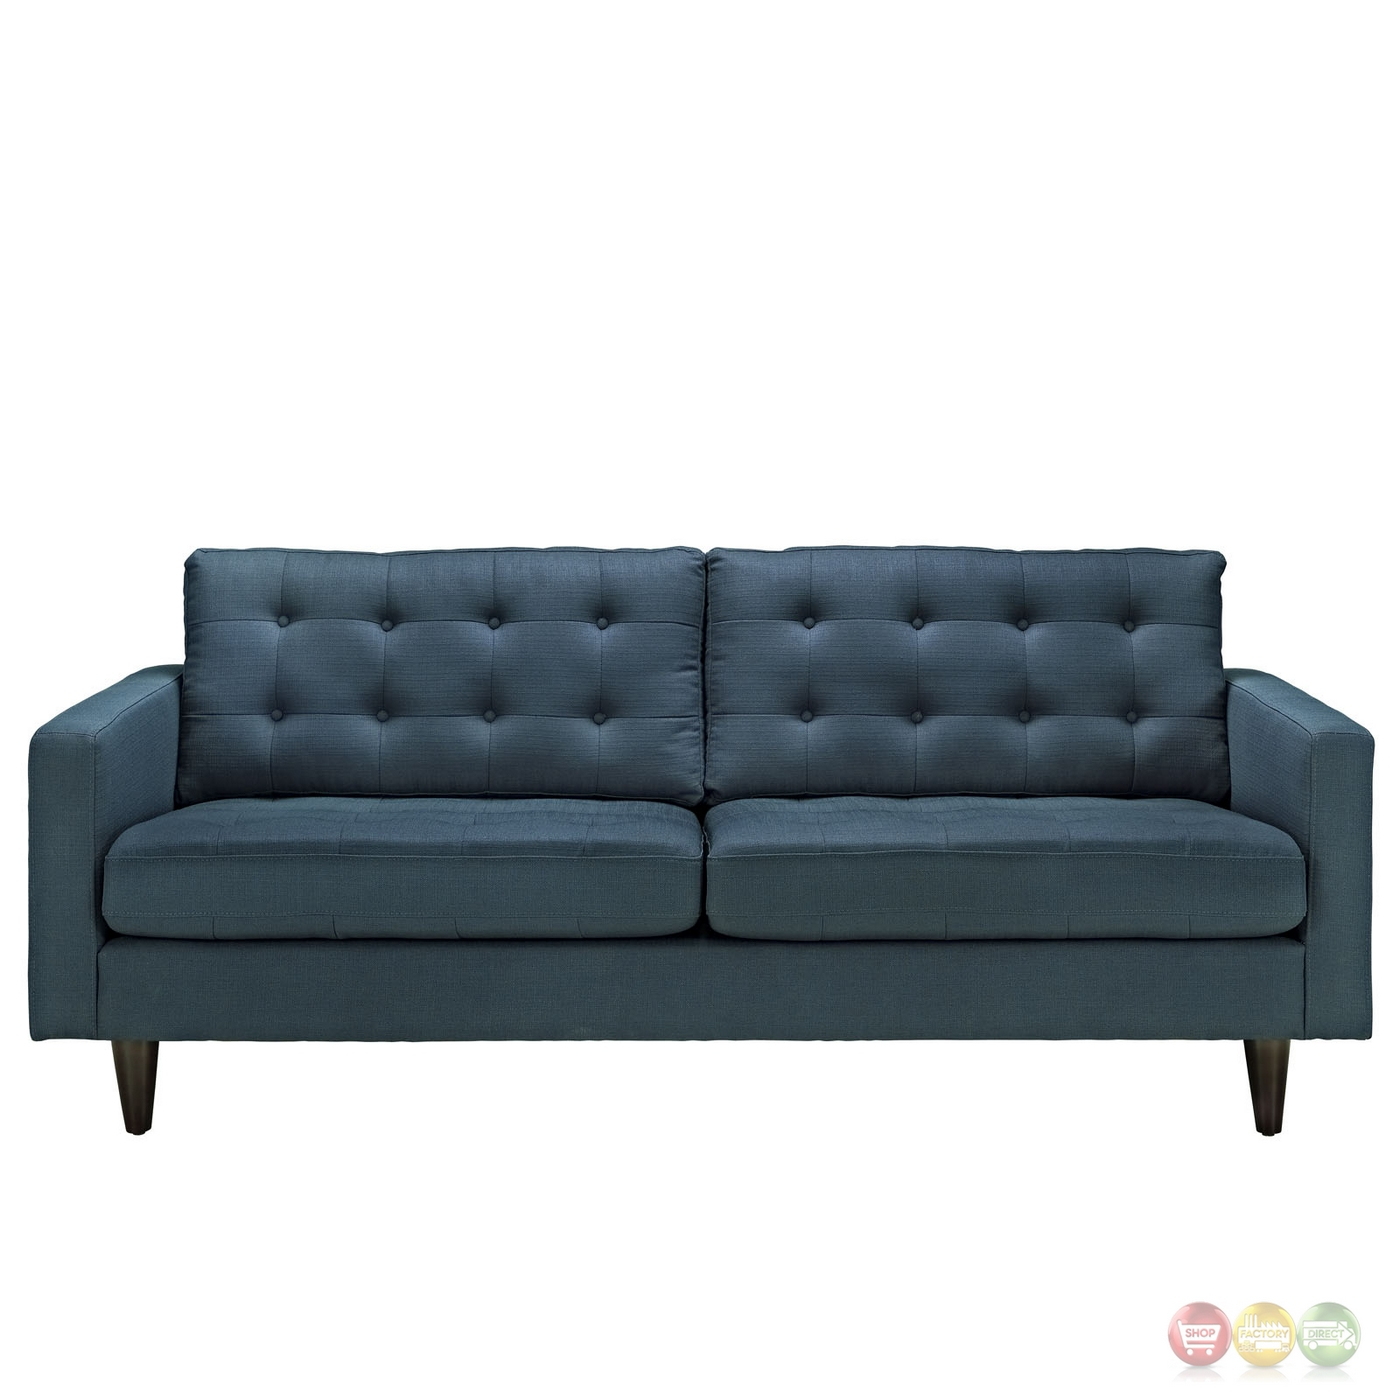 Empress Contemporary Button tufted Upholstered Sofa Azure : empress contemporary button tufted upholstered sofa azure 4 from shopfactorydirect.com size 1400 x 1400 jpeg 363kB